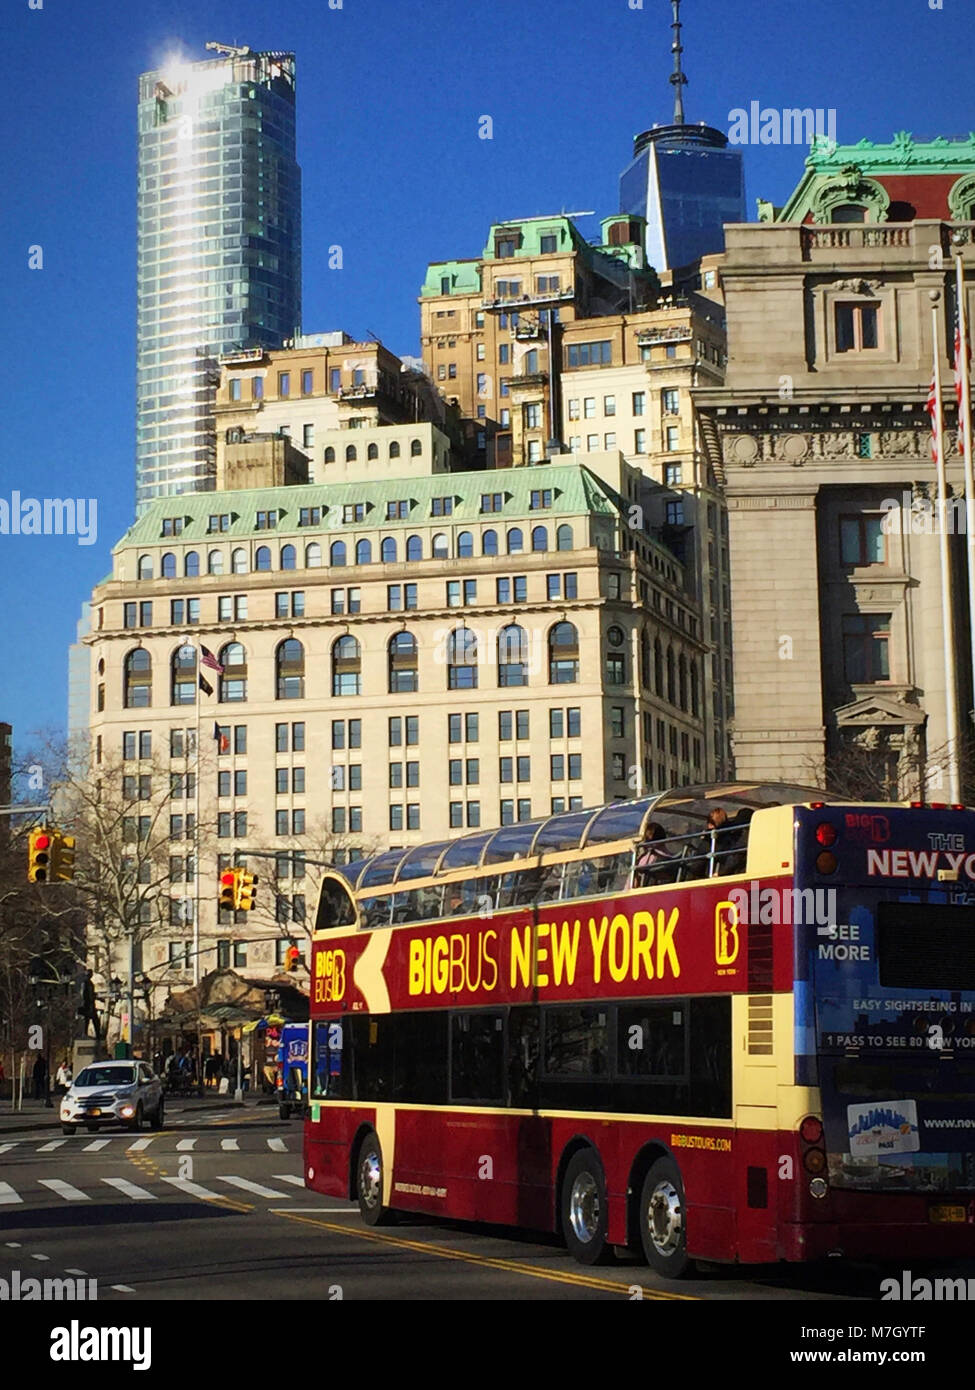 Big Bus touring in Lower Manhattan, NYC, USA - Stock Image